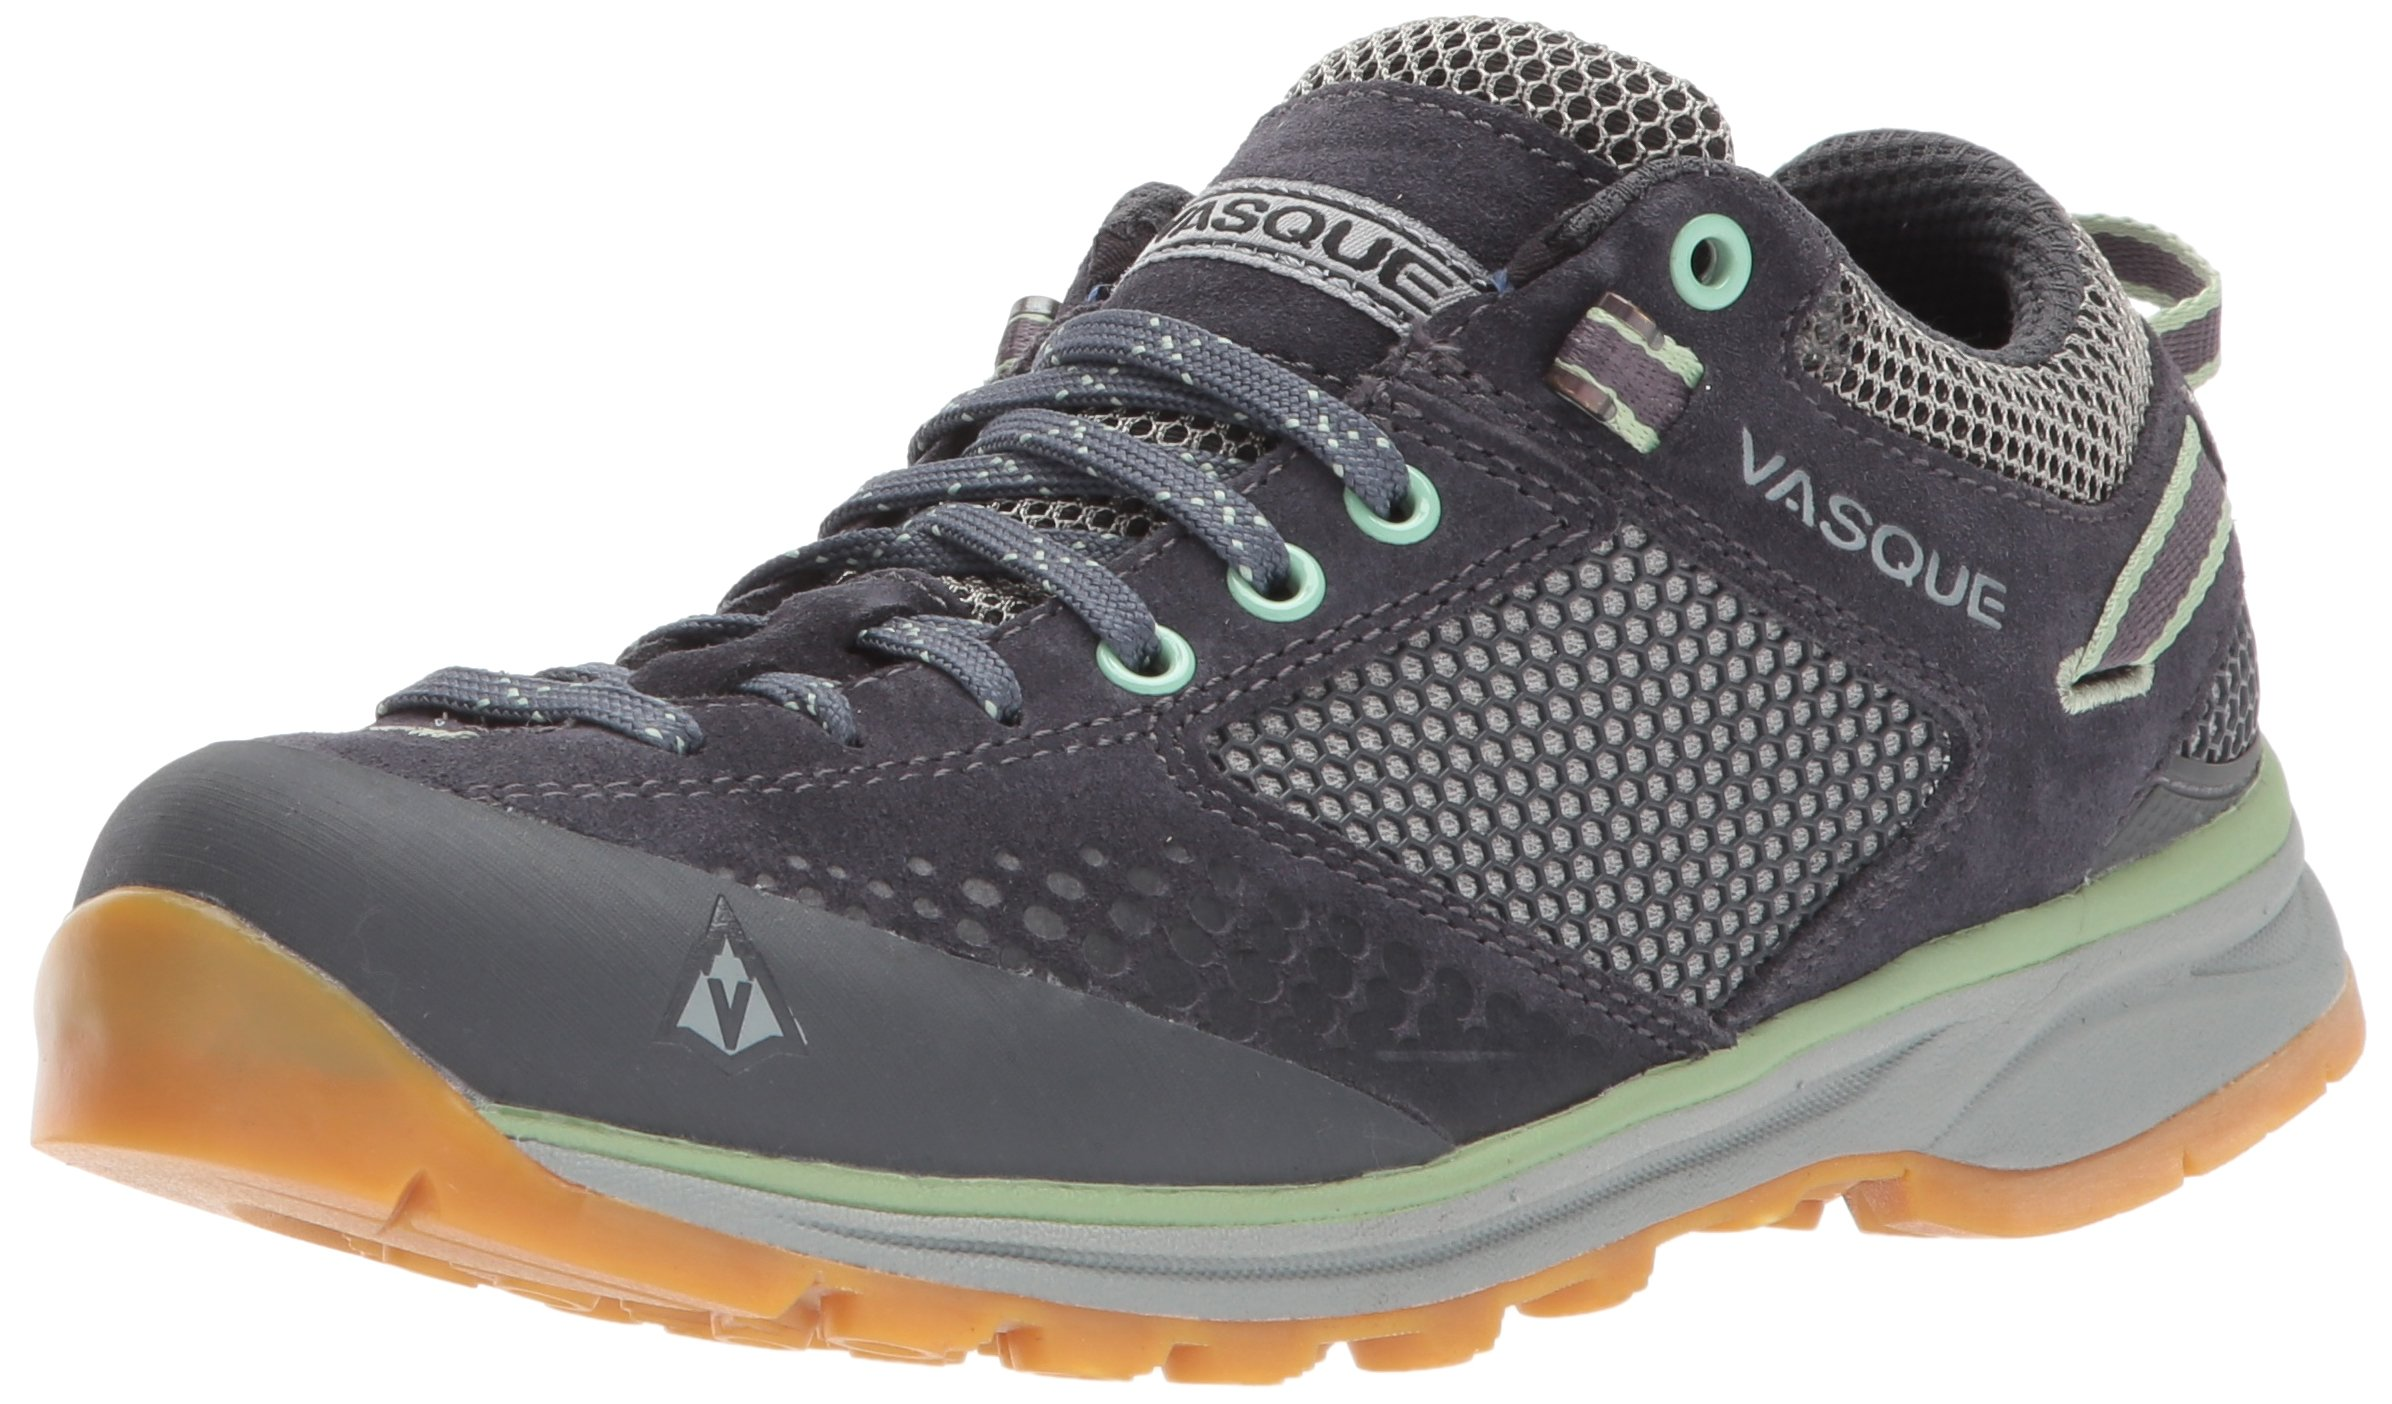 Vasque Women's Grand Traverse Backpacking Boot, Ebony/Basil, 9 M US by Vasque